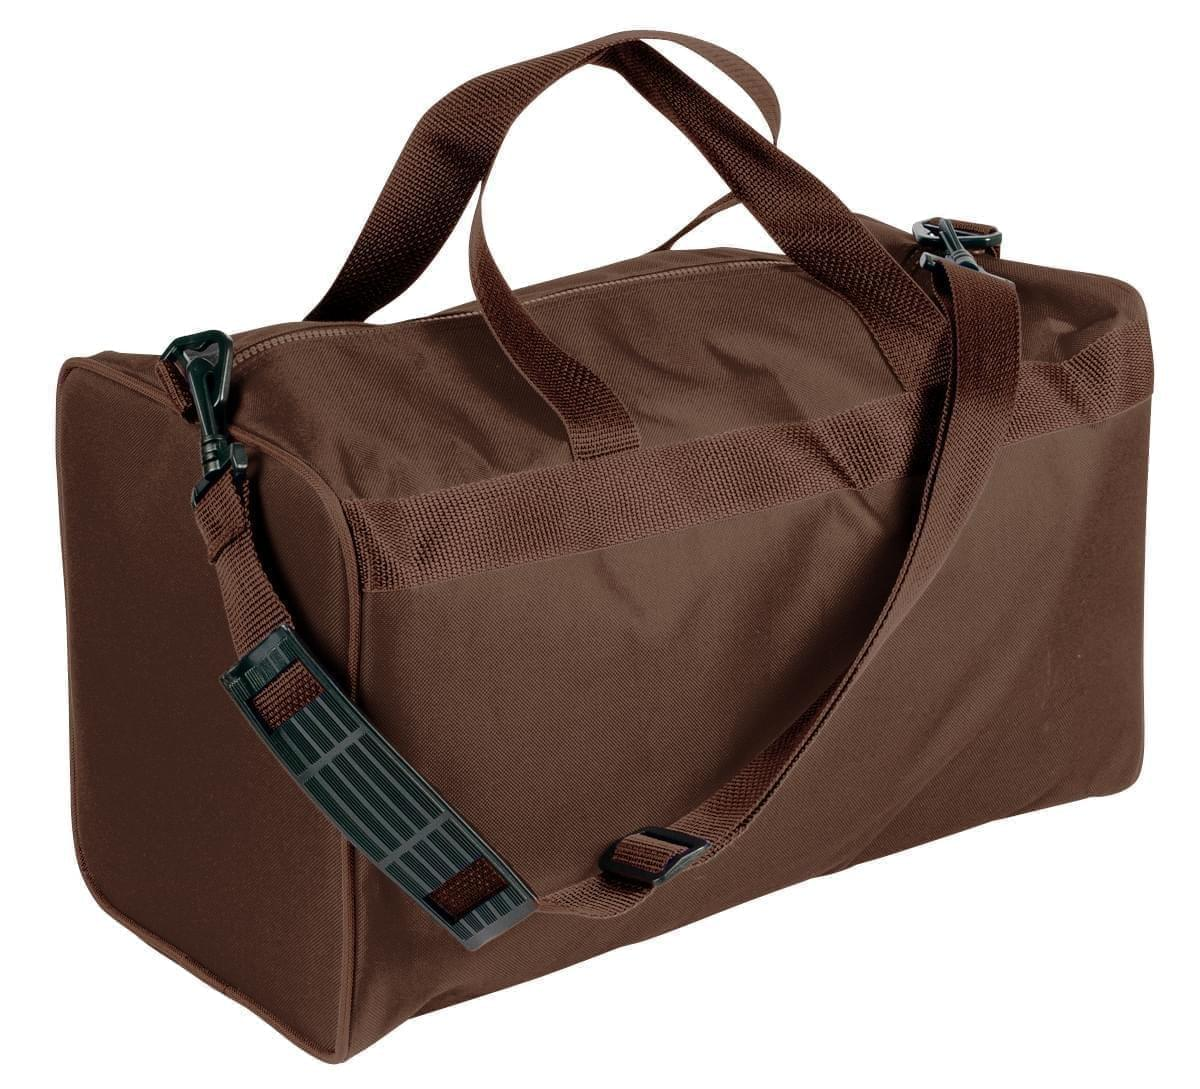 USA Made Nylon Poly Weekend Duffles, WLKX31-600